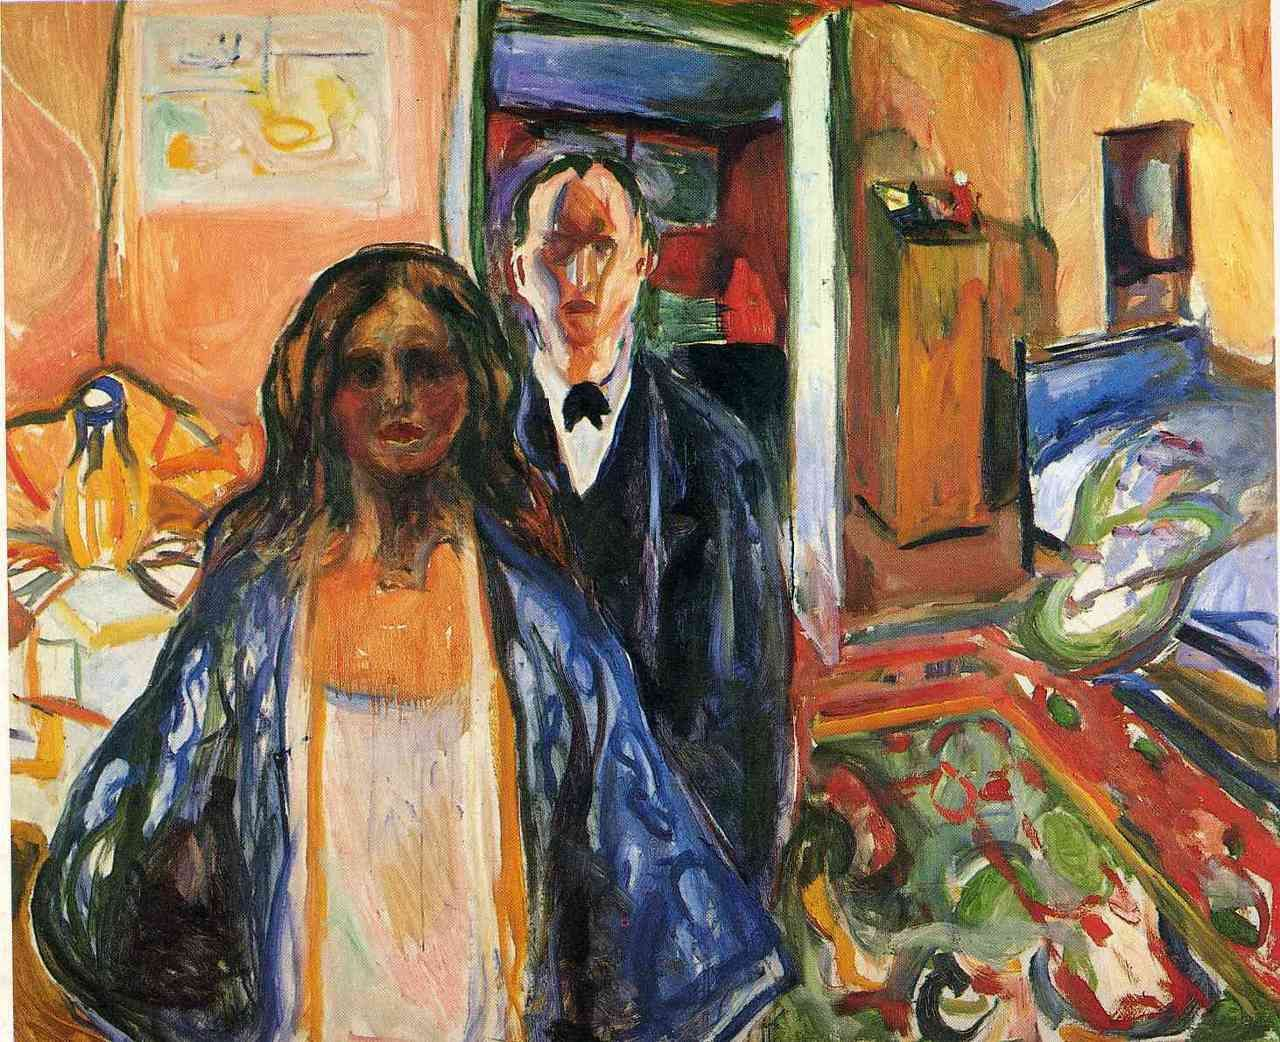 Edvard Munch, The Artist and His Model, 1919-1921